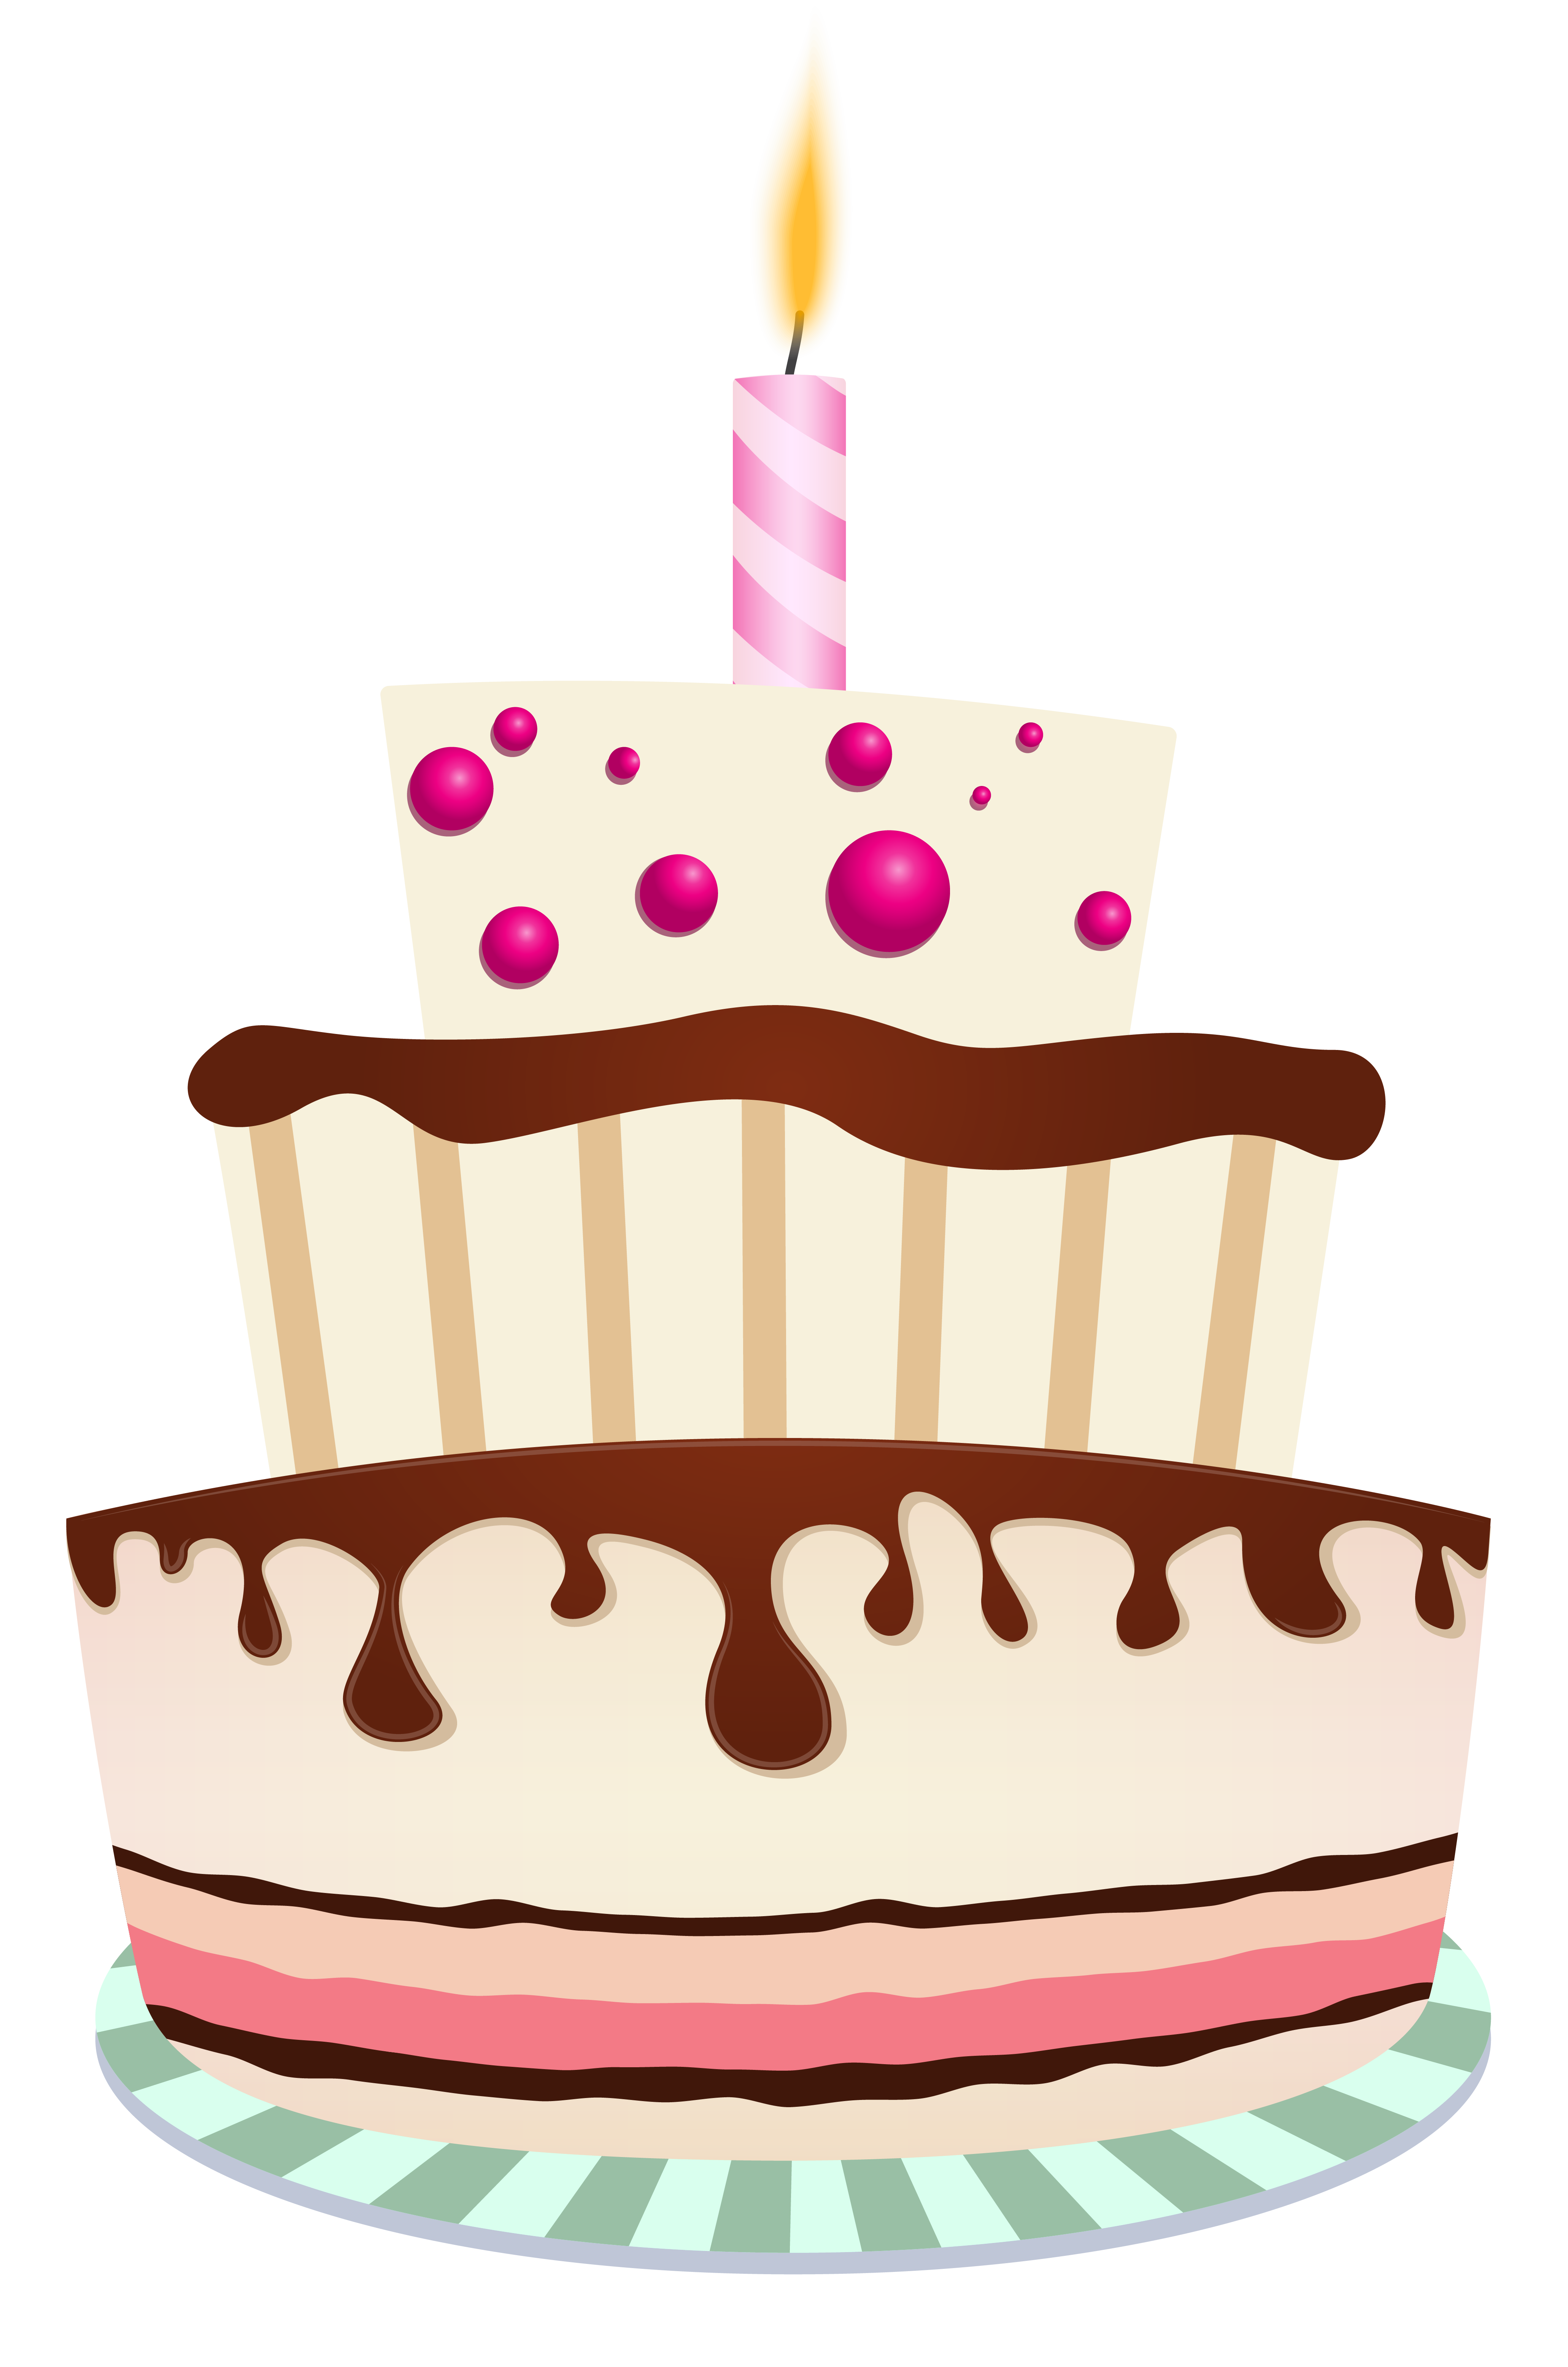 Download One Birthday Cake Candle Chocolate With HQ PNG ...